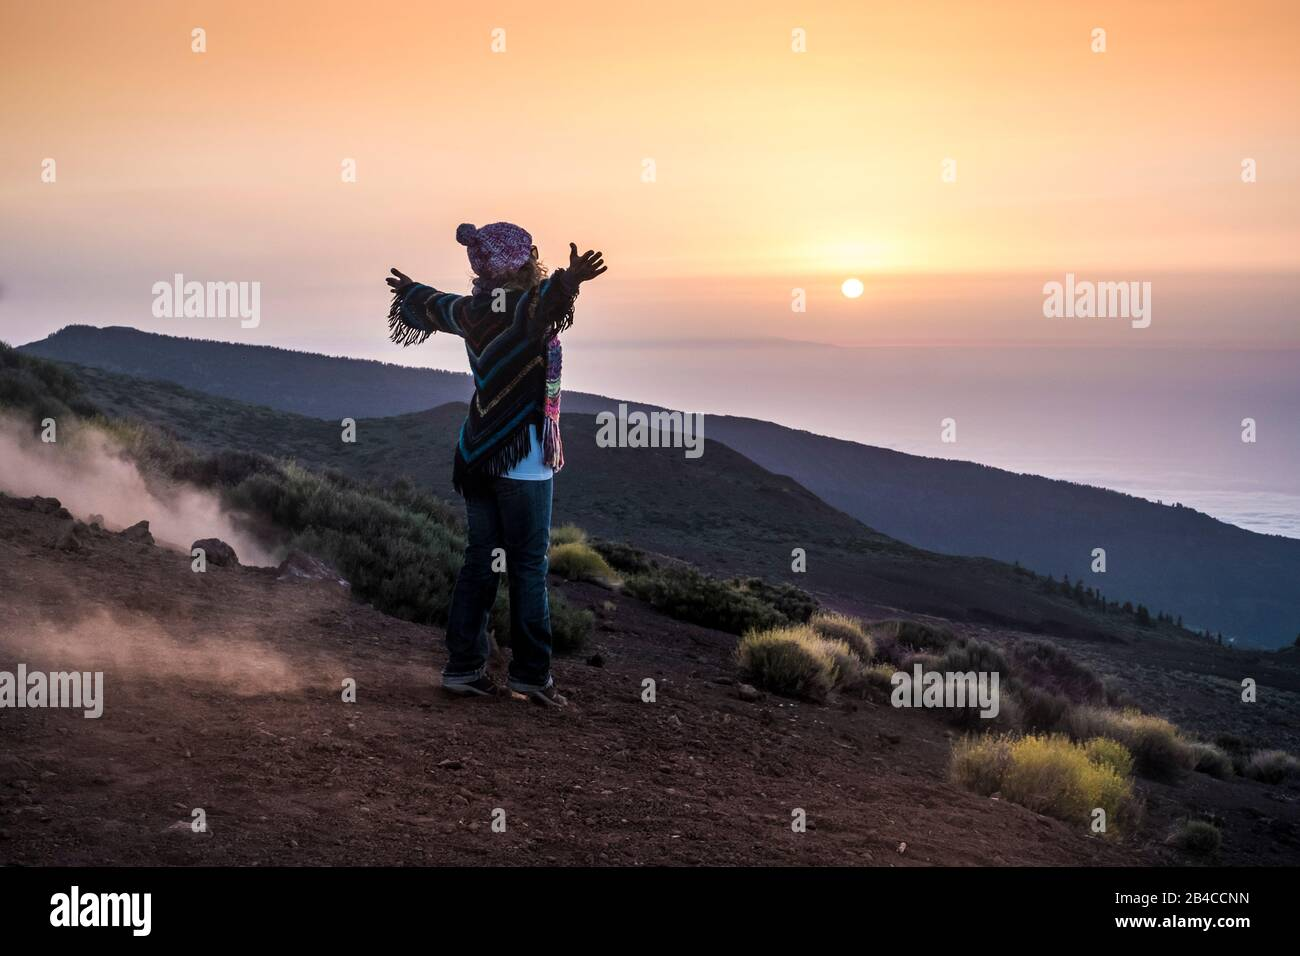 people enjoying open nature at the mountain during sunset -active woman in outdoor leisure activity with open arms - freedom and alternative lifestyle travel concept Stock Photo